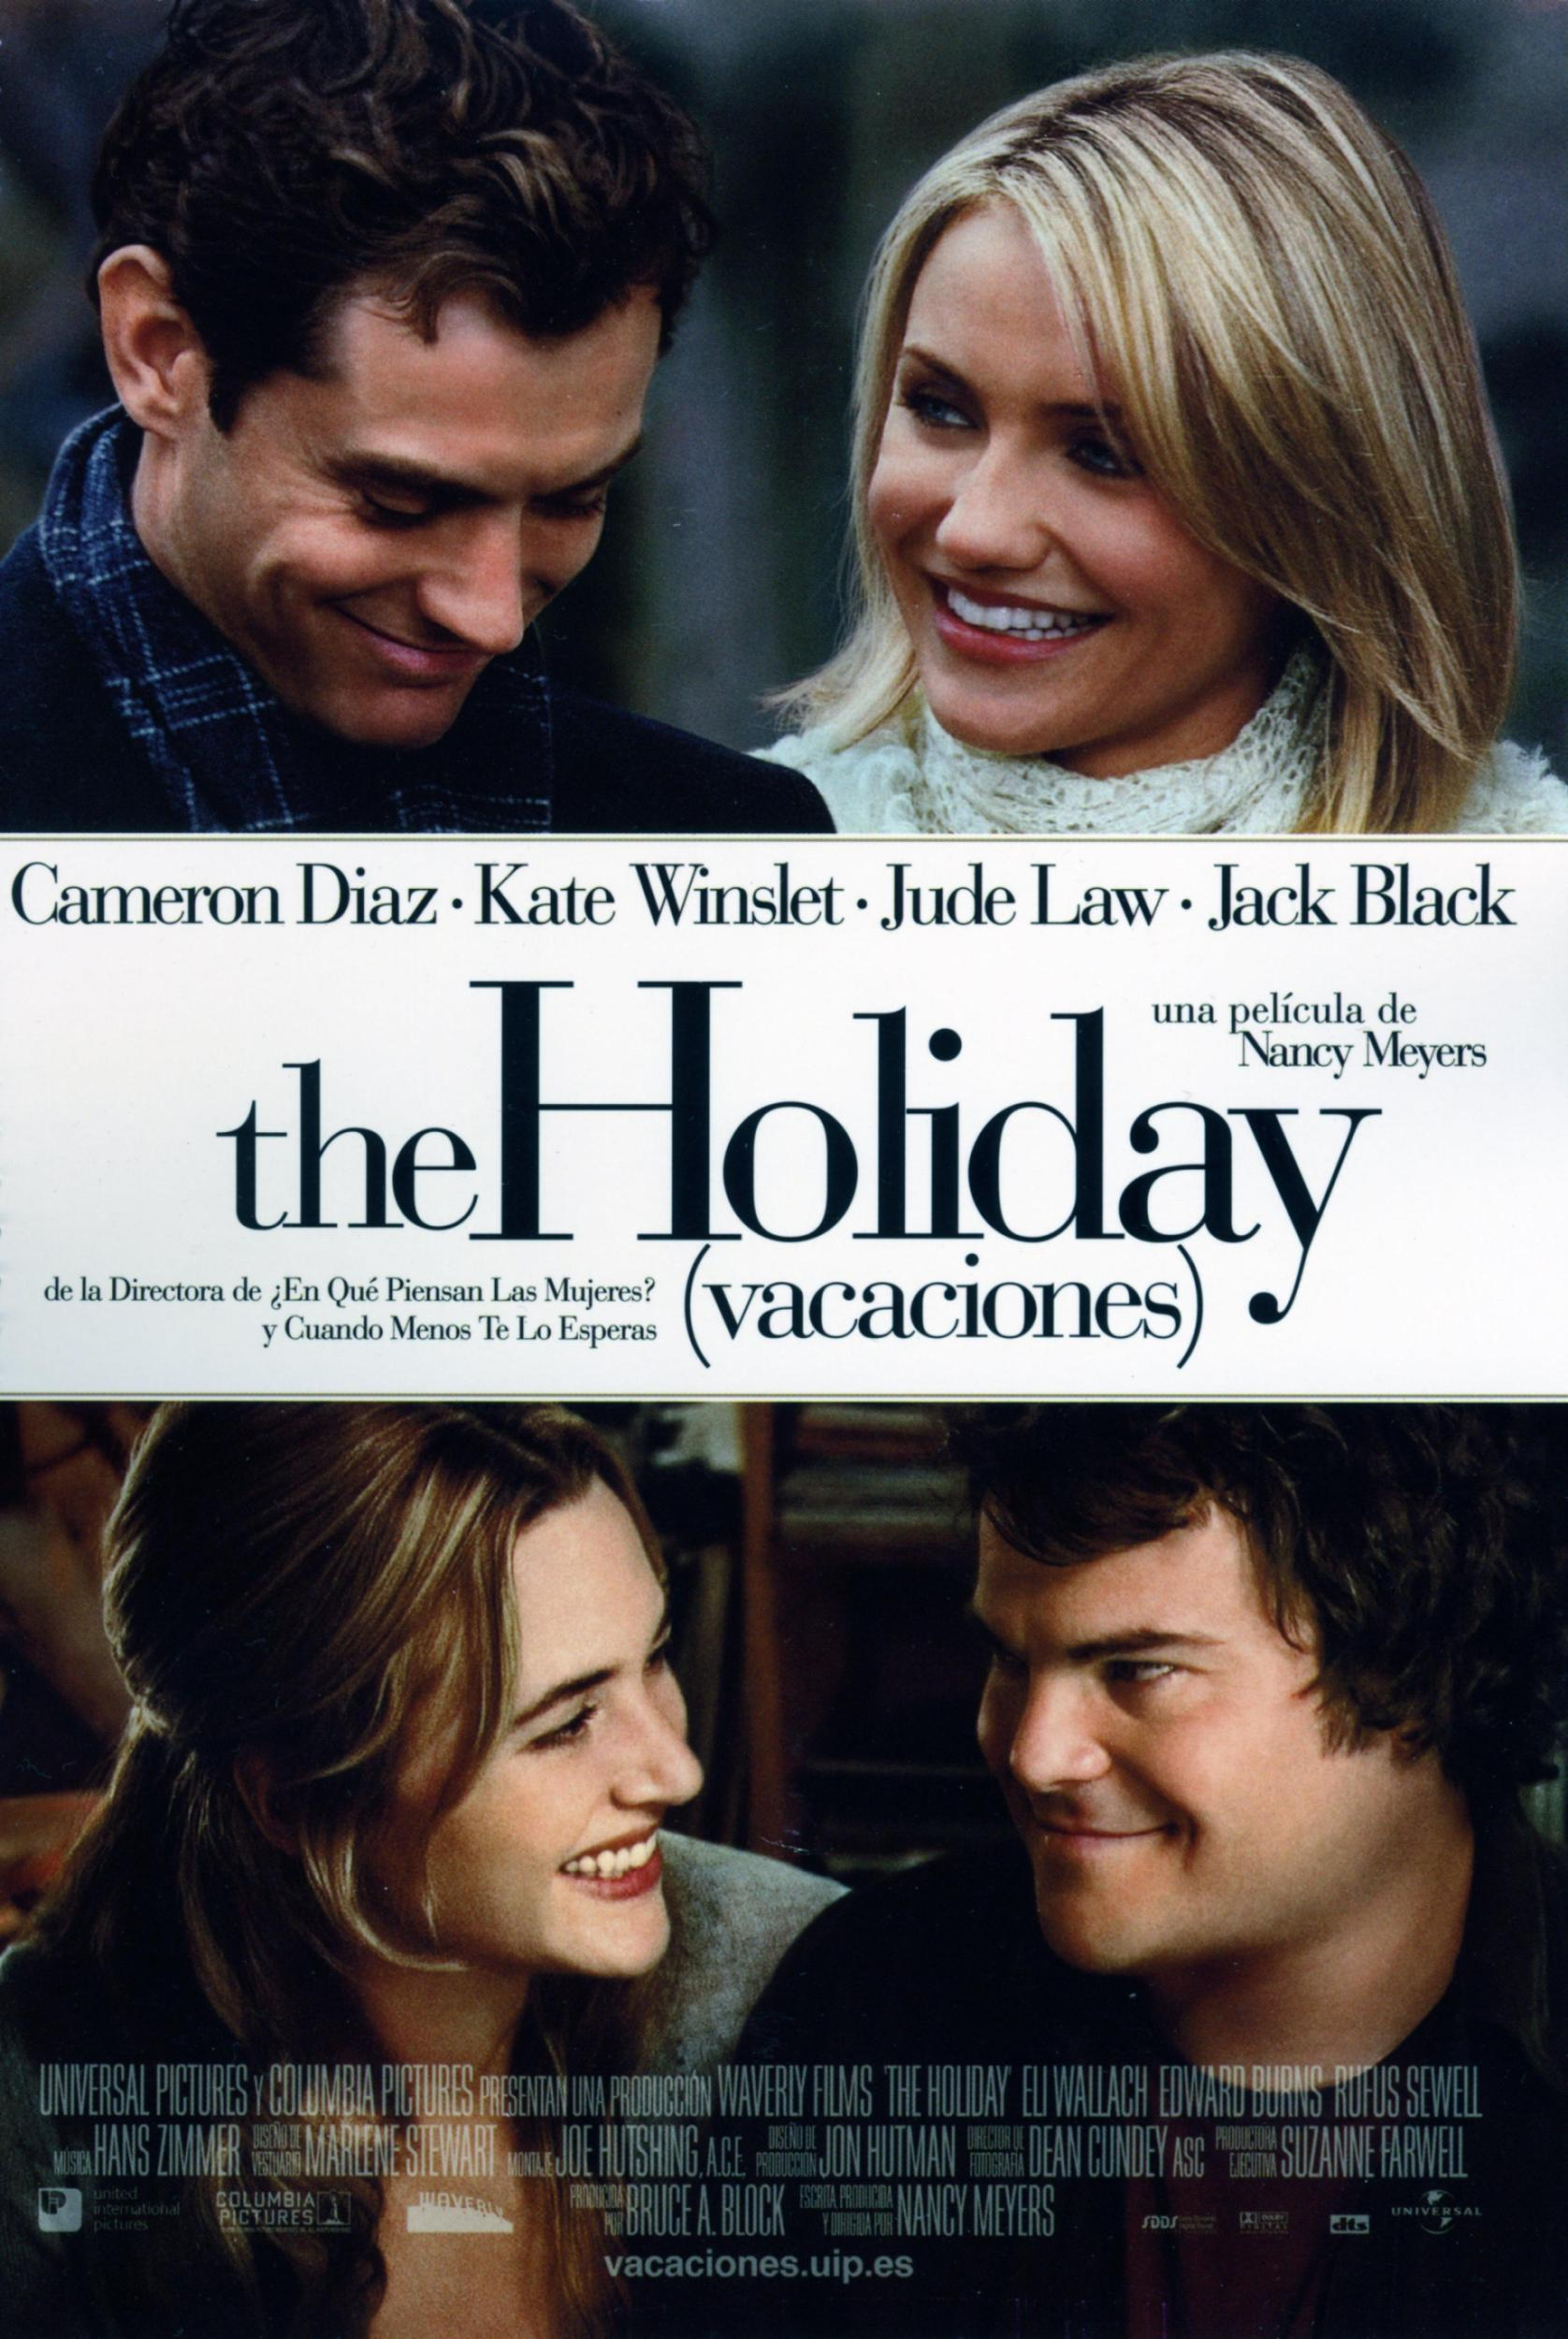 Film The Holiday Movie Posters.2038.net | Posters For Movieid-1514: Holiday